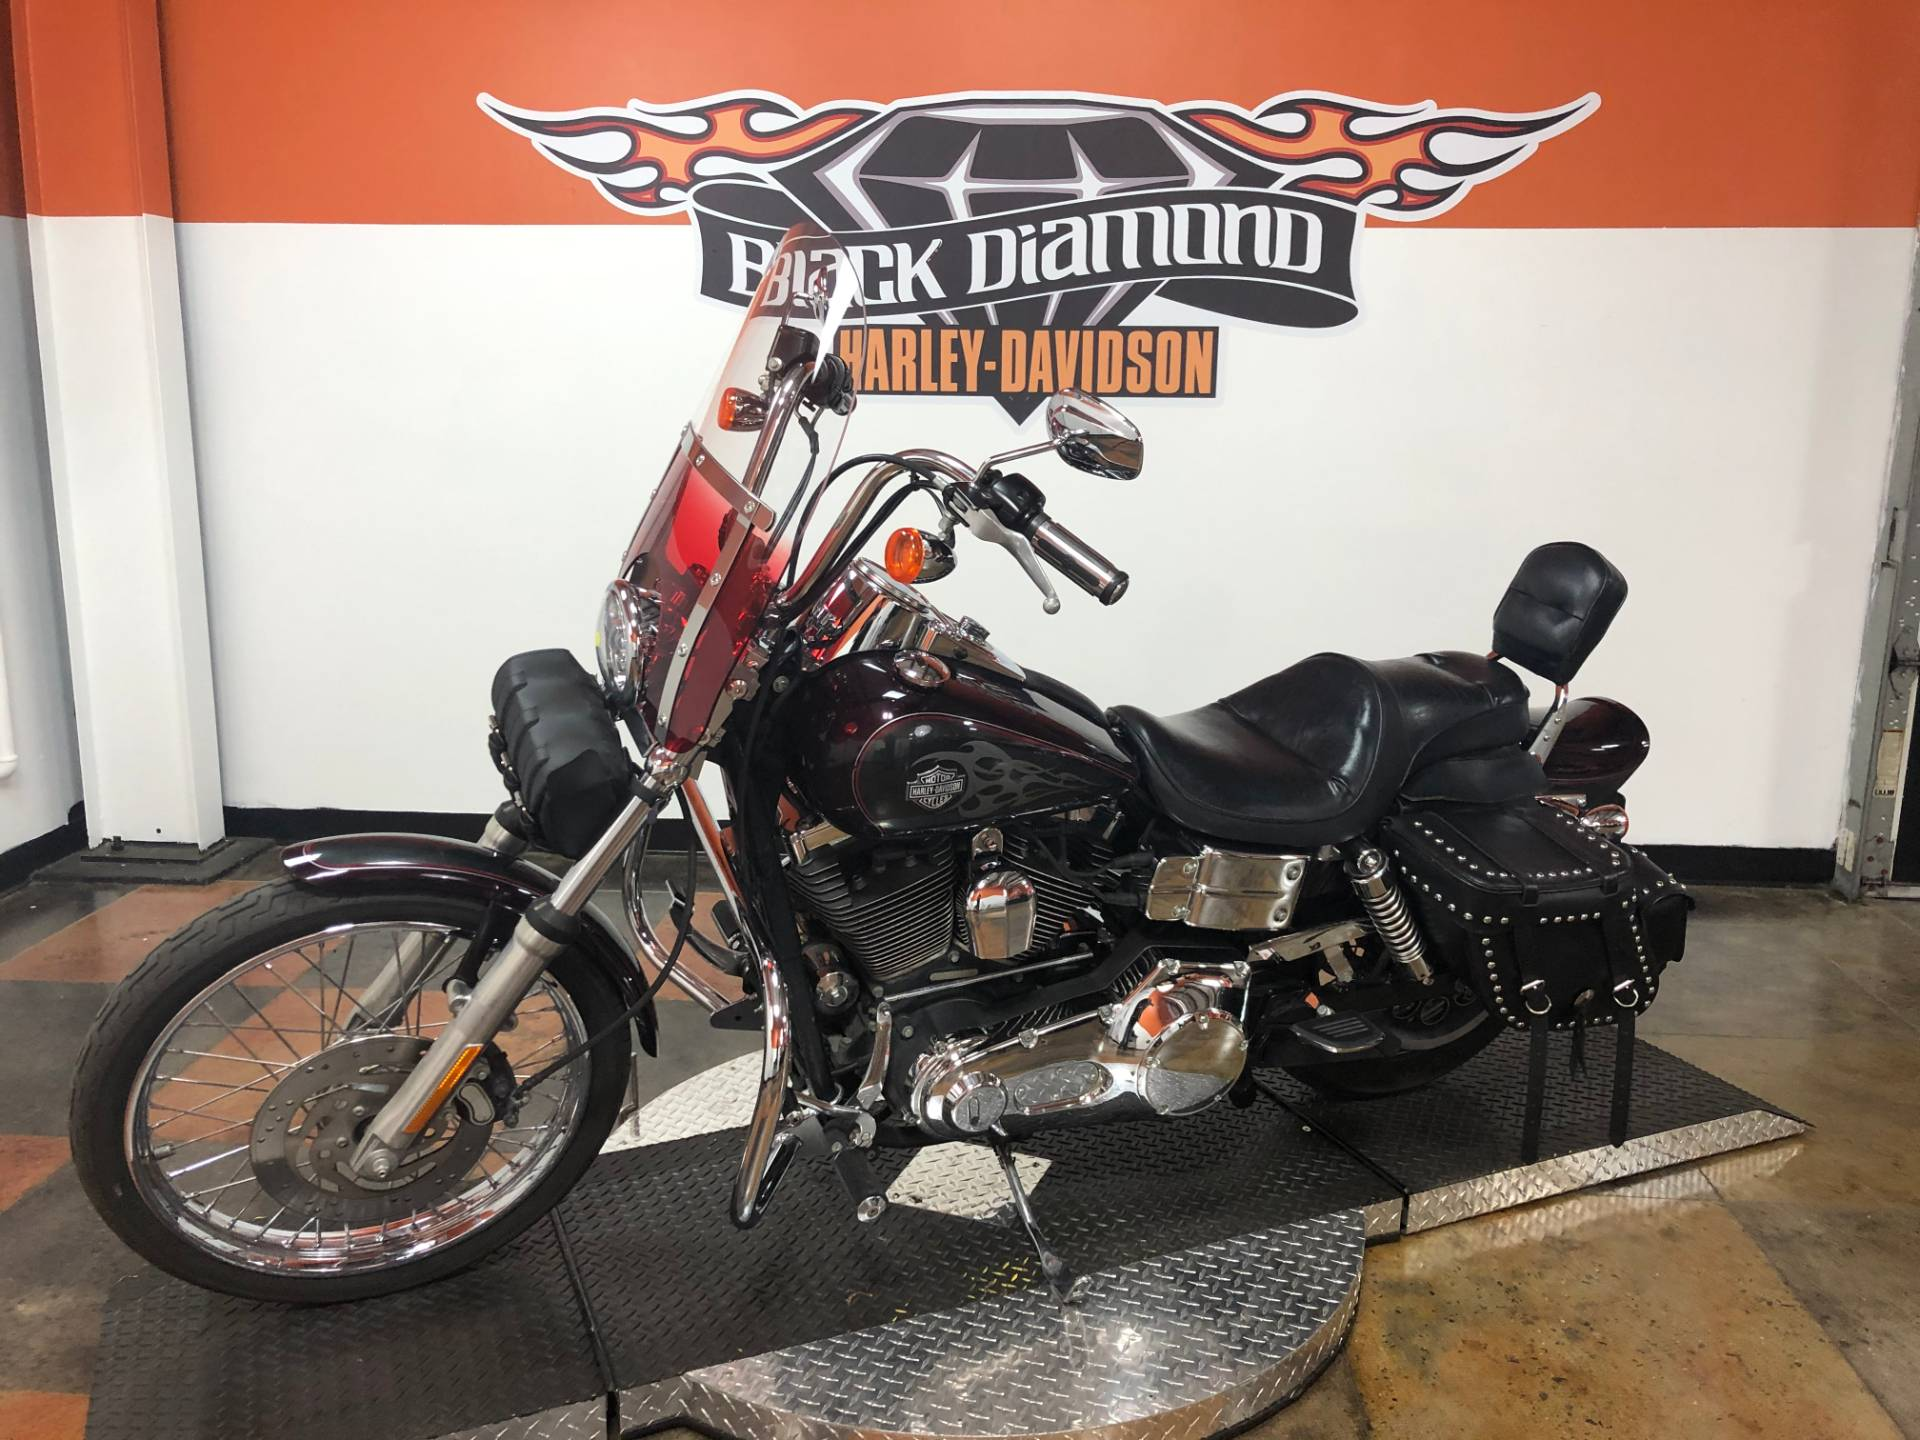 2005 Harley-Davidson FXDWG/FXDWGI Dyna Wide Glide® in Marion, Illinois - Photo 3